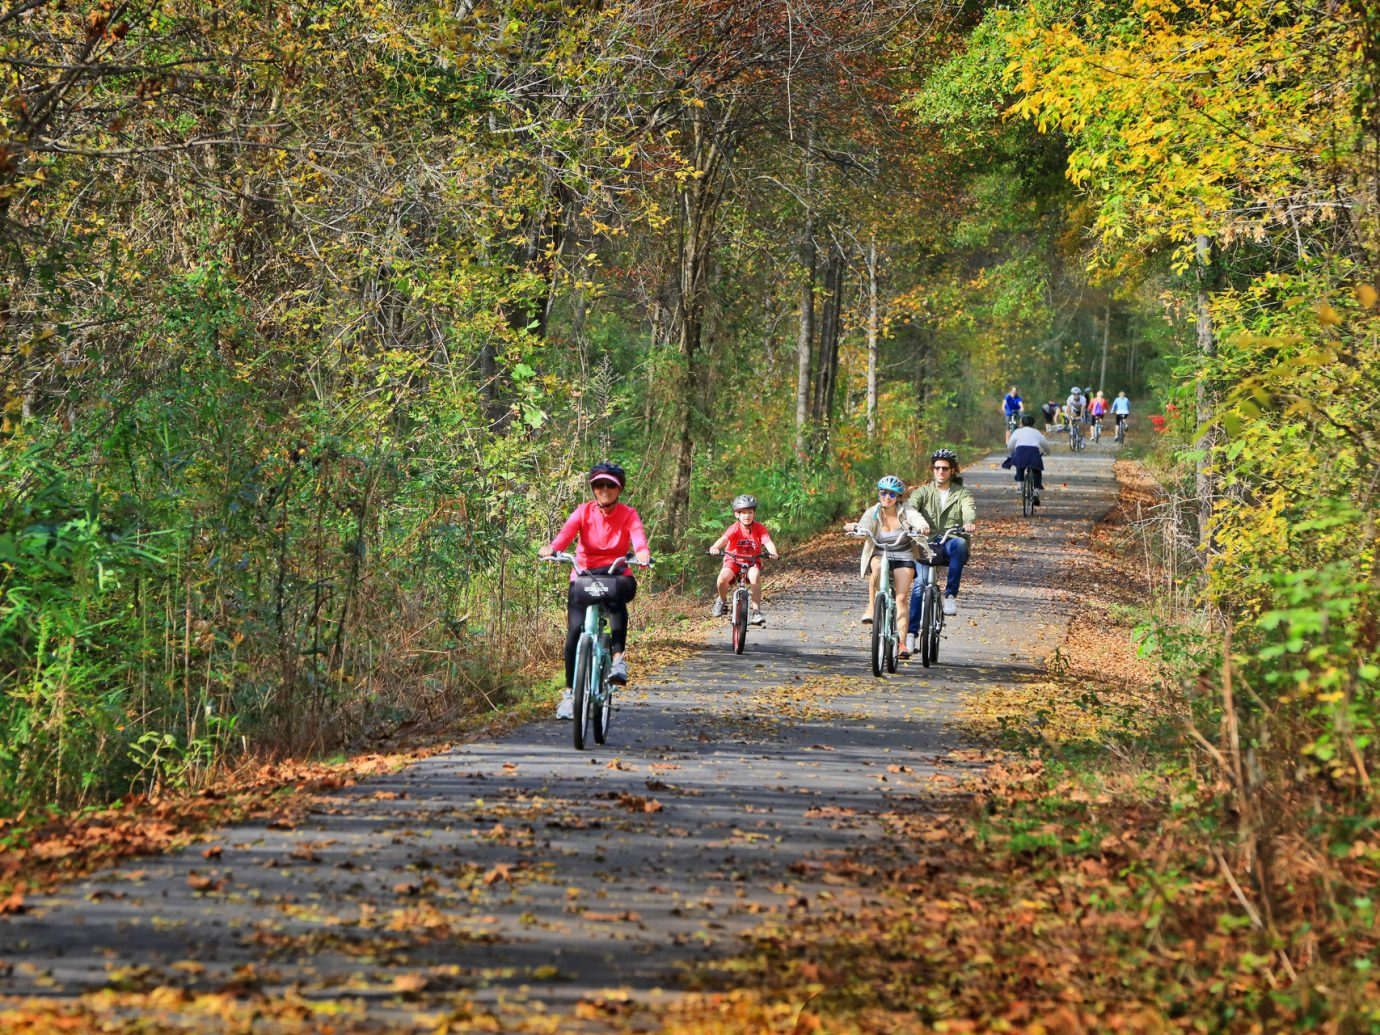 activities bikers Bikes Biking calm Greenery leaves mountain biking Nature Outdoor Activities Outdoors path people remote road serene trees Trip Ideas tree outdoor riding grass bicycle trail cycling autumn season sports leaf plant Forest mountain bike woodland walking wooded vehicle wood dirt